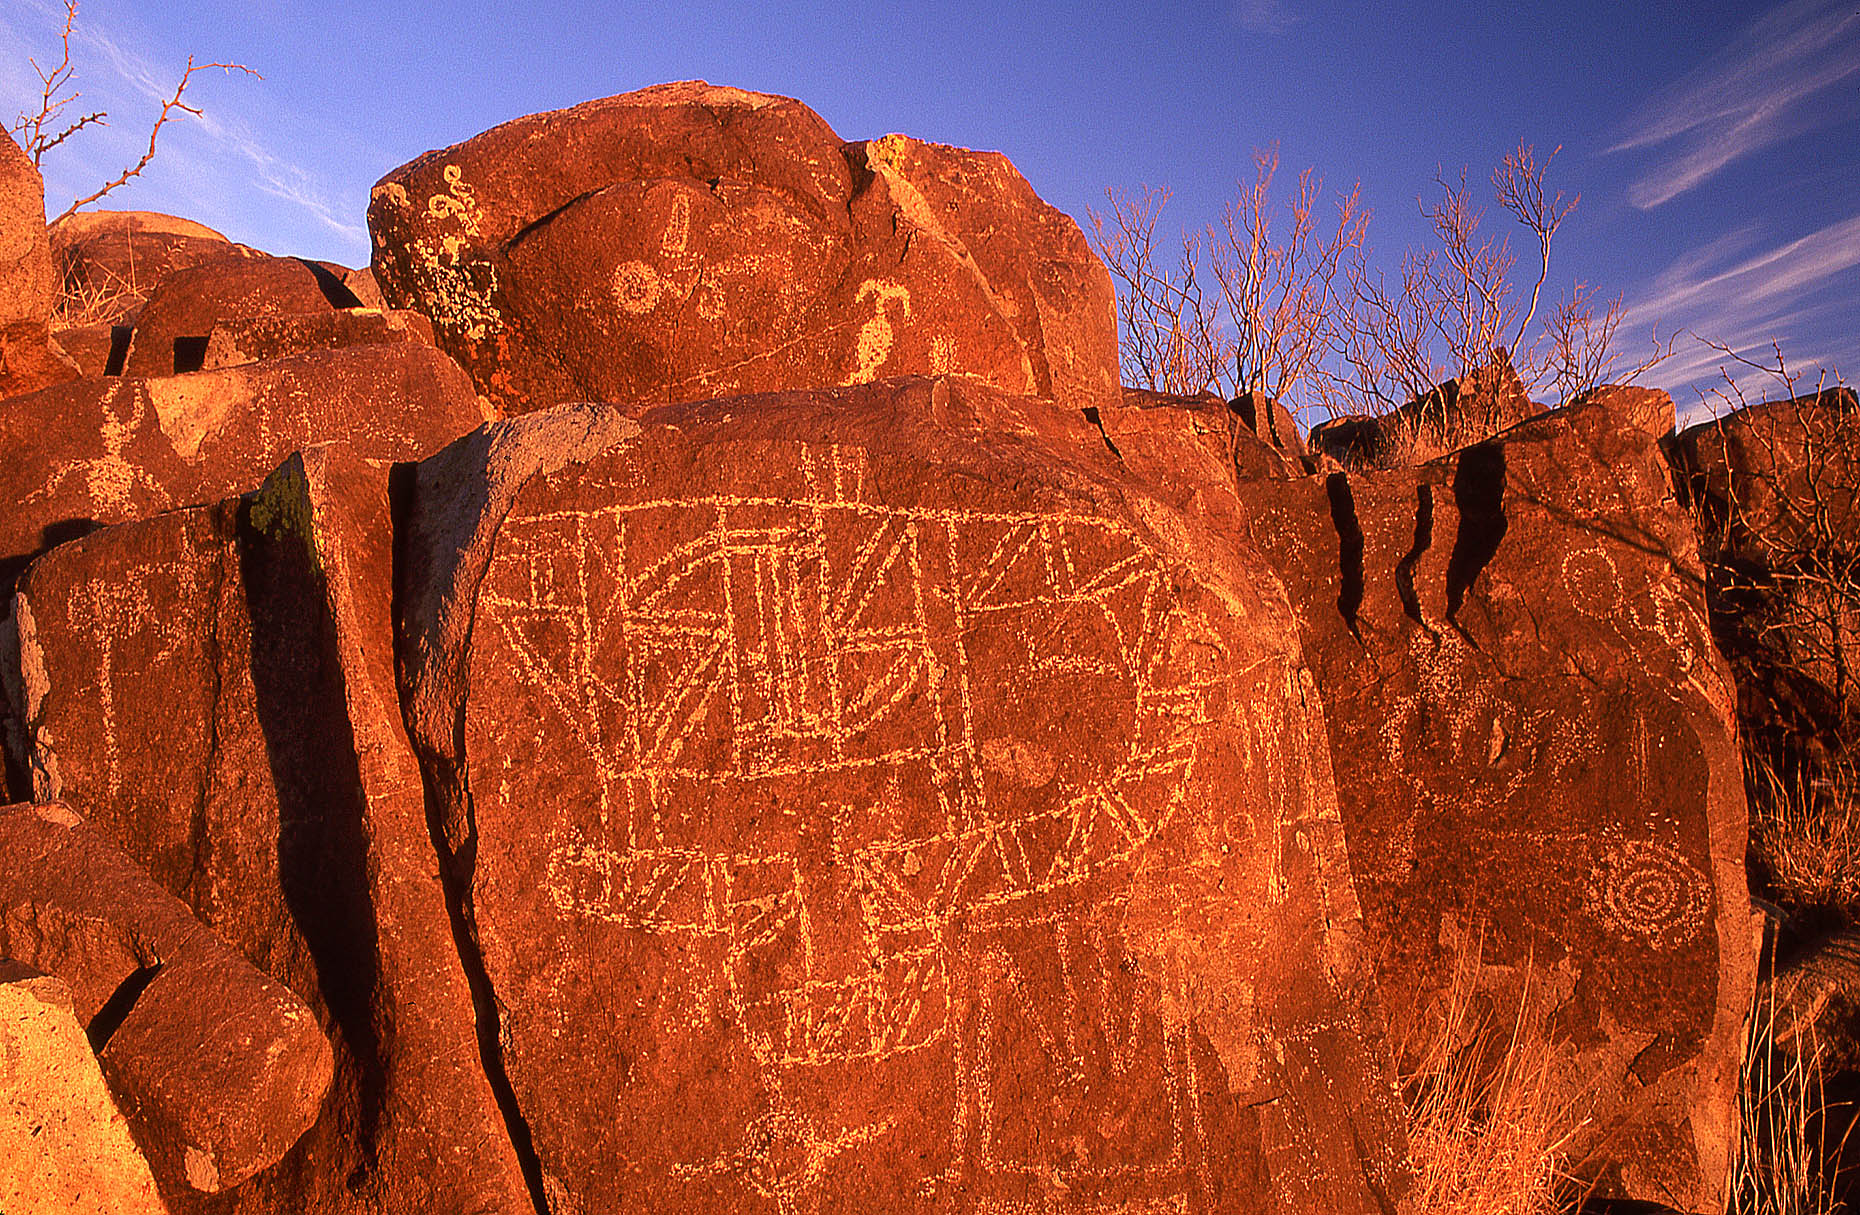 Petroglyph panel, John Annerino, Mescalero Apache, Billy the Kid, Three Rivers Petroglyph Site NM, Sierra Blanca, Bureau of Land Management, Rio Grande, prehistoric Jornada Mogollon petroglyphs